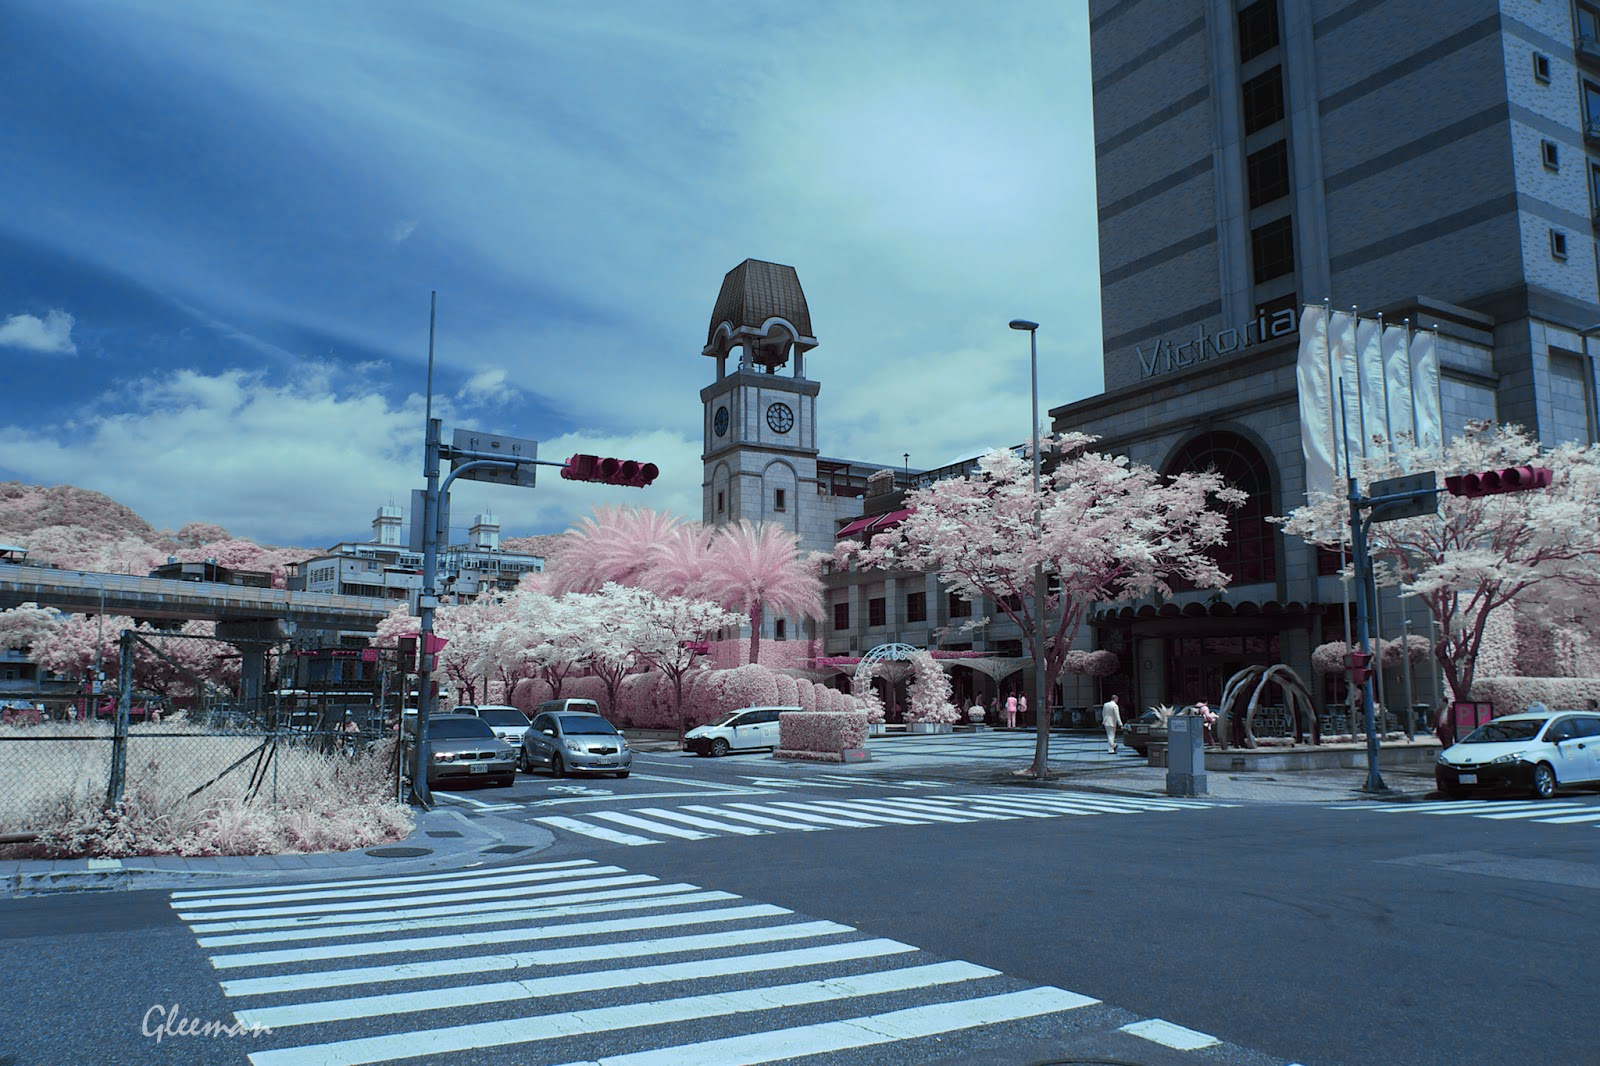 Pentax K5 Color IR Photography。皓皓說那是大笨鐘XD   (利用色板混合器上色。)